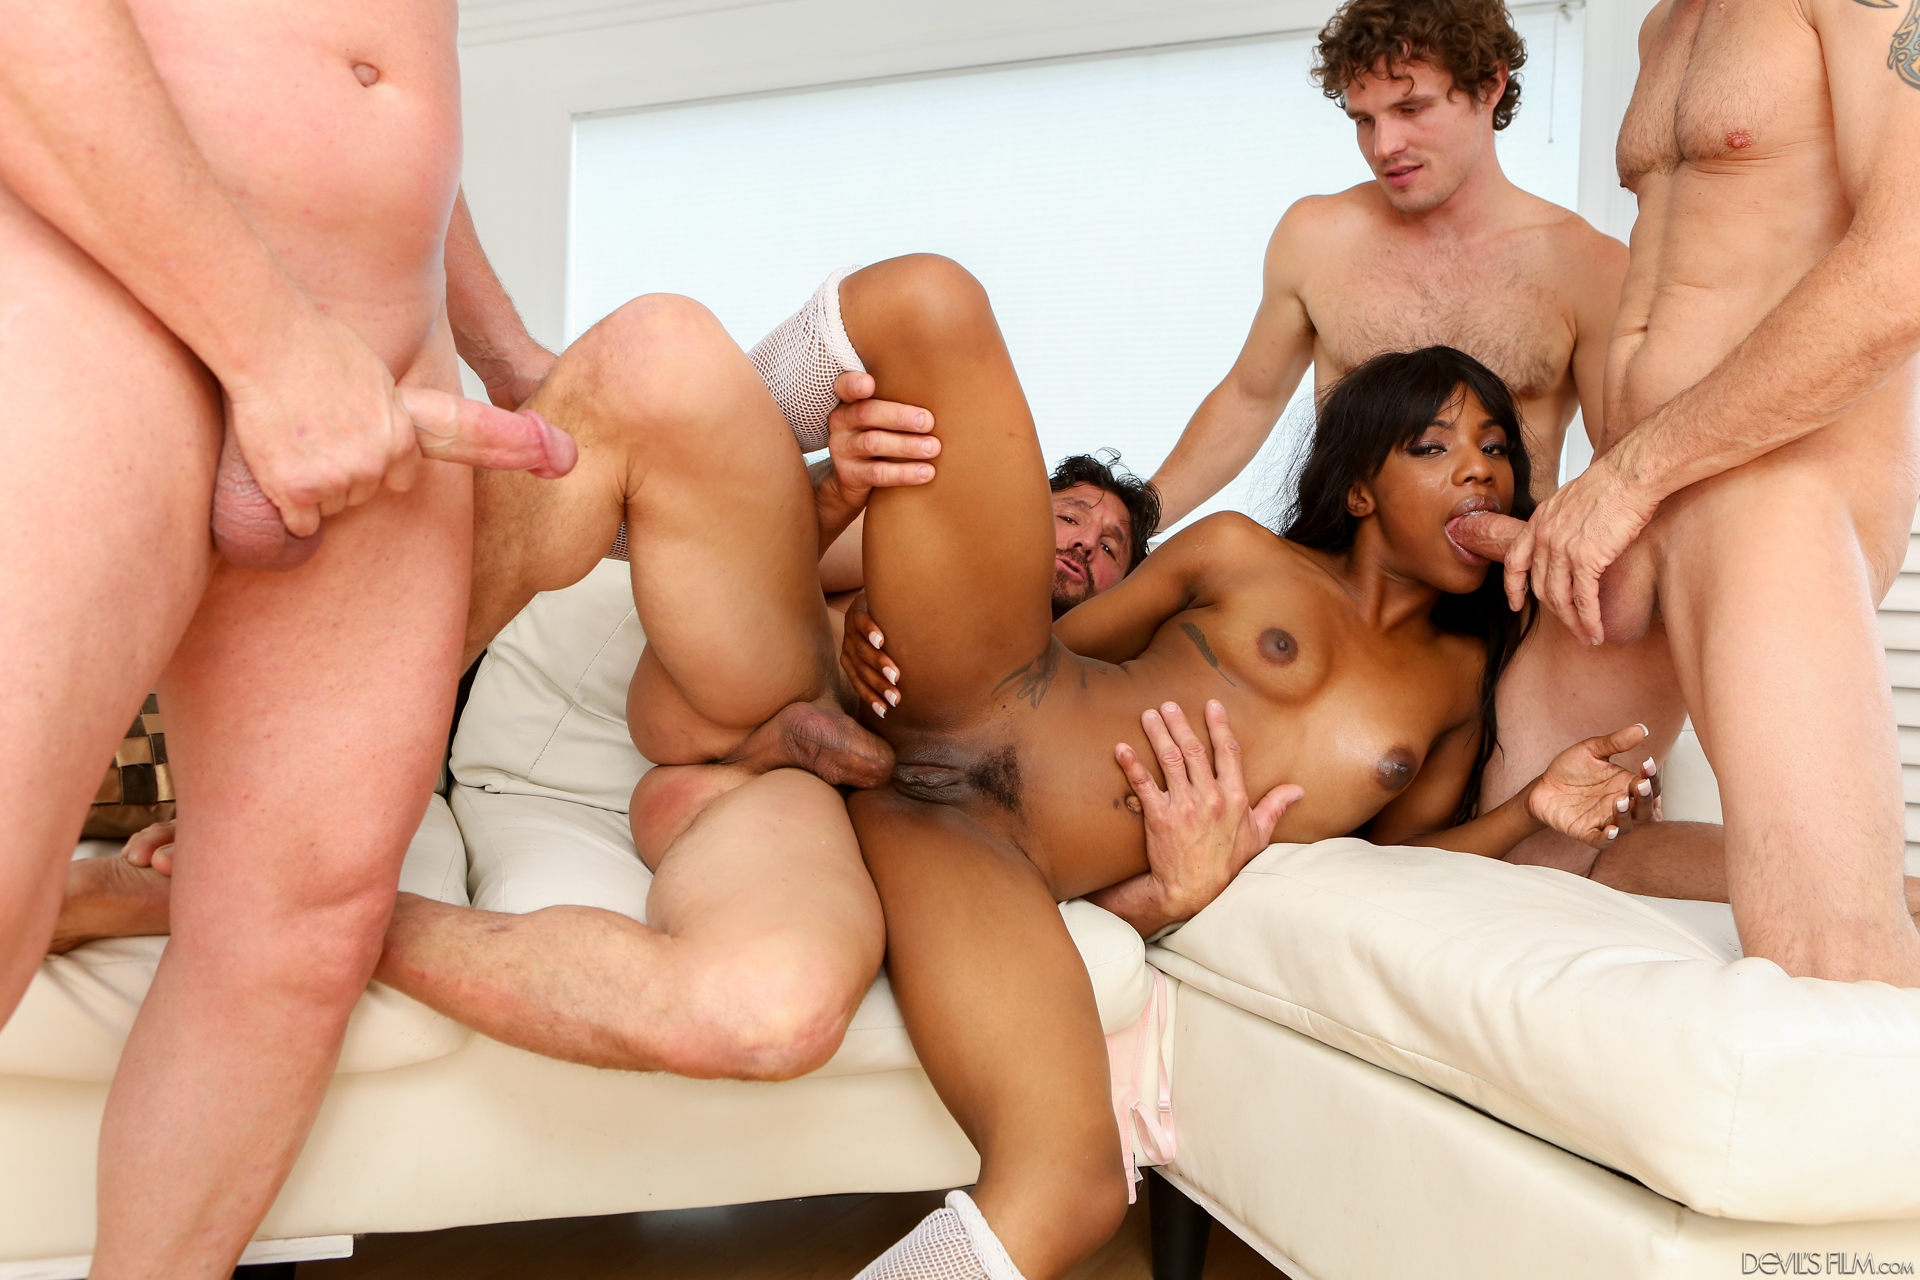 Black Girl White Guy  Most Sexy Porn  Free Hd  4K Photos-4124